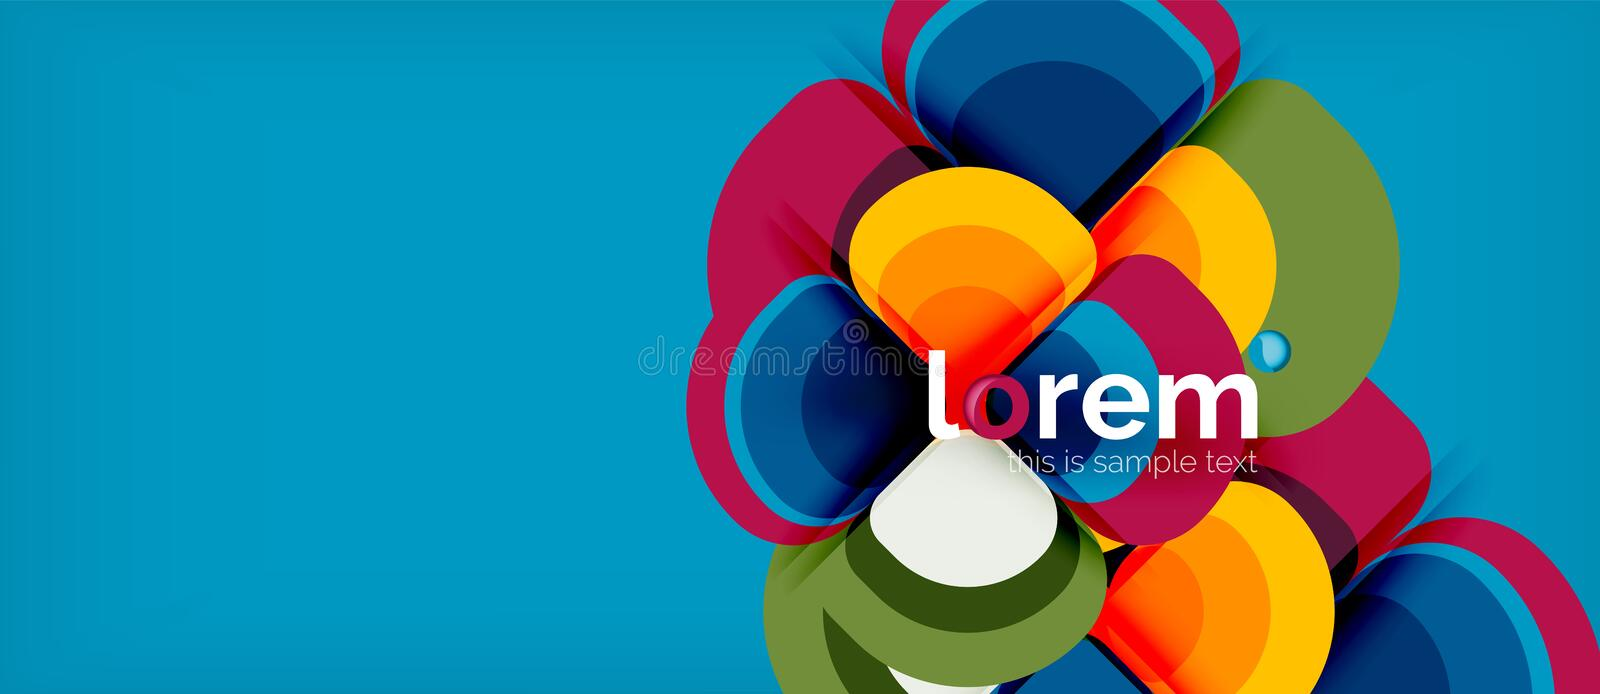 Abstract background - geometric multicolored round shapes composition. Trendy abstract layout template for business or. Technology presentation or web brochure royalty free illustration